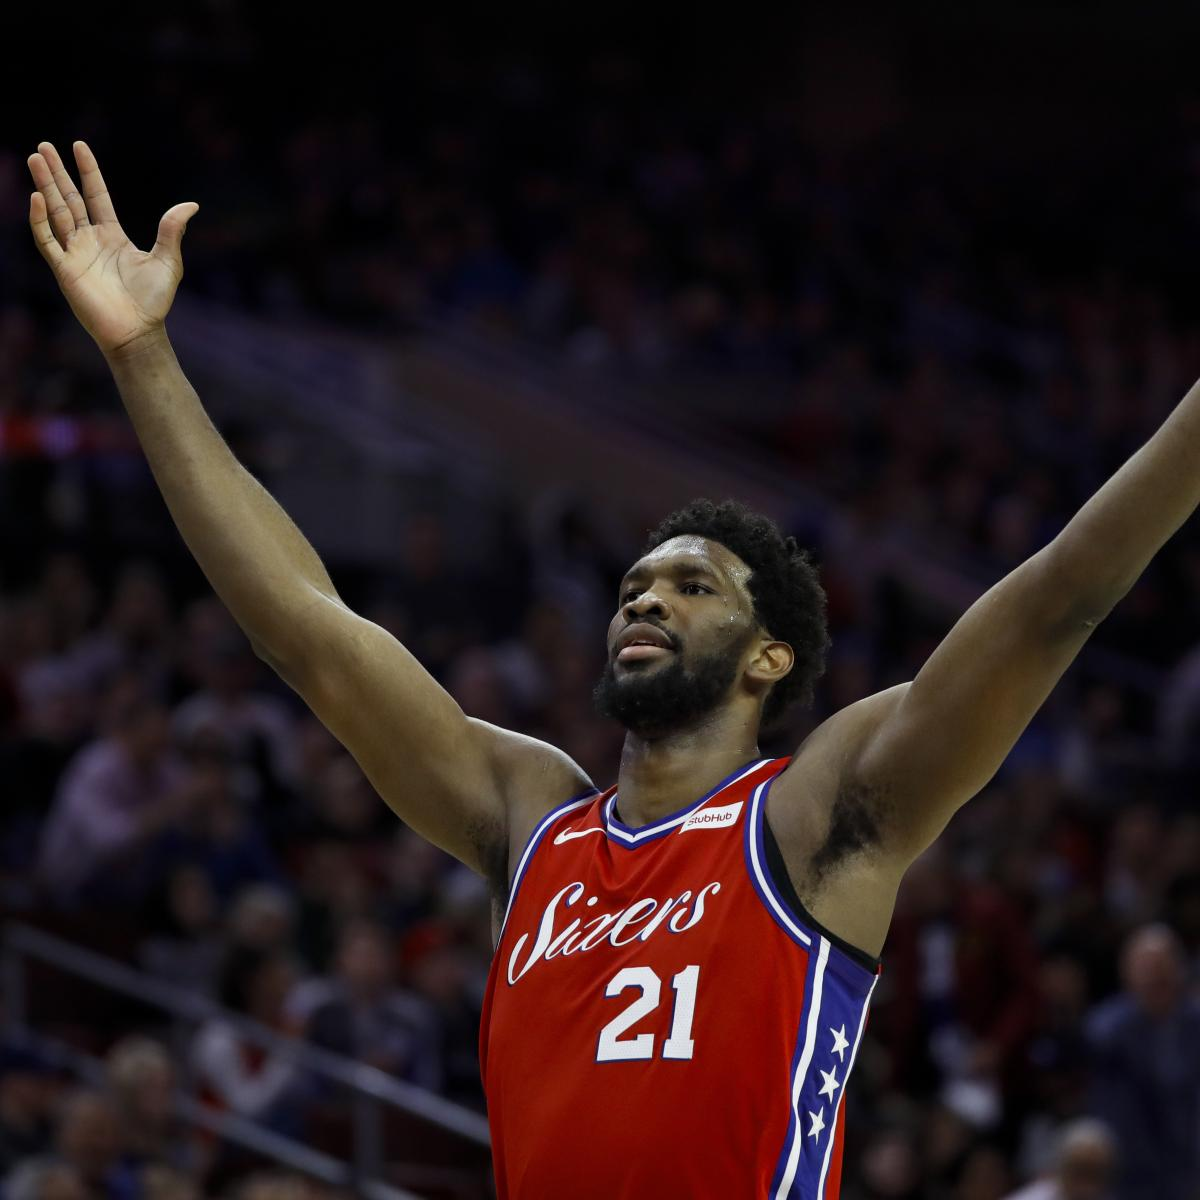 Video: 76ers Star Joel Embiid Reveals He Lost 25 Pounds This Offseason